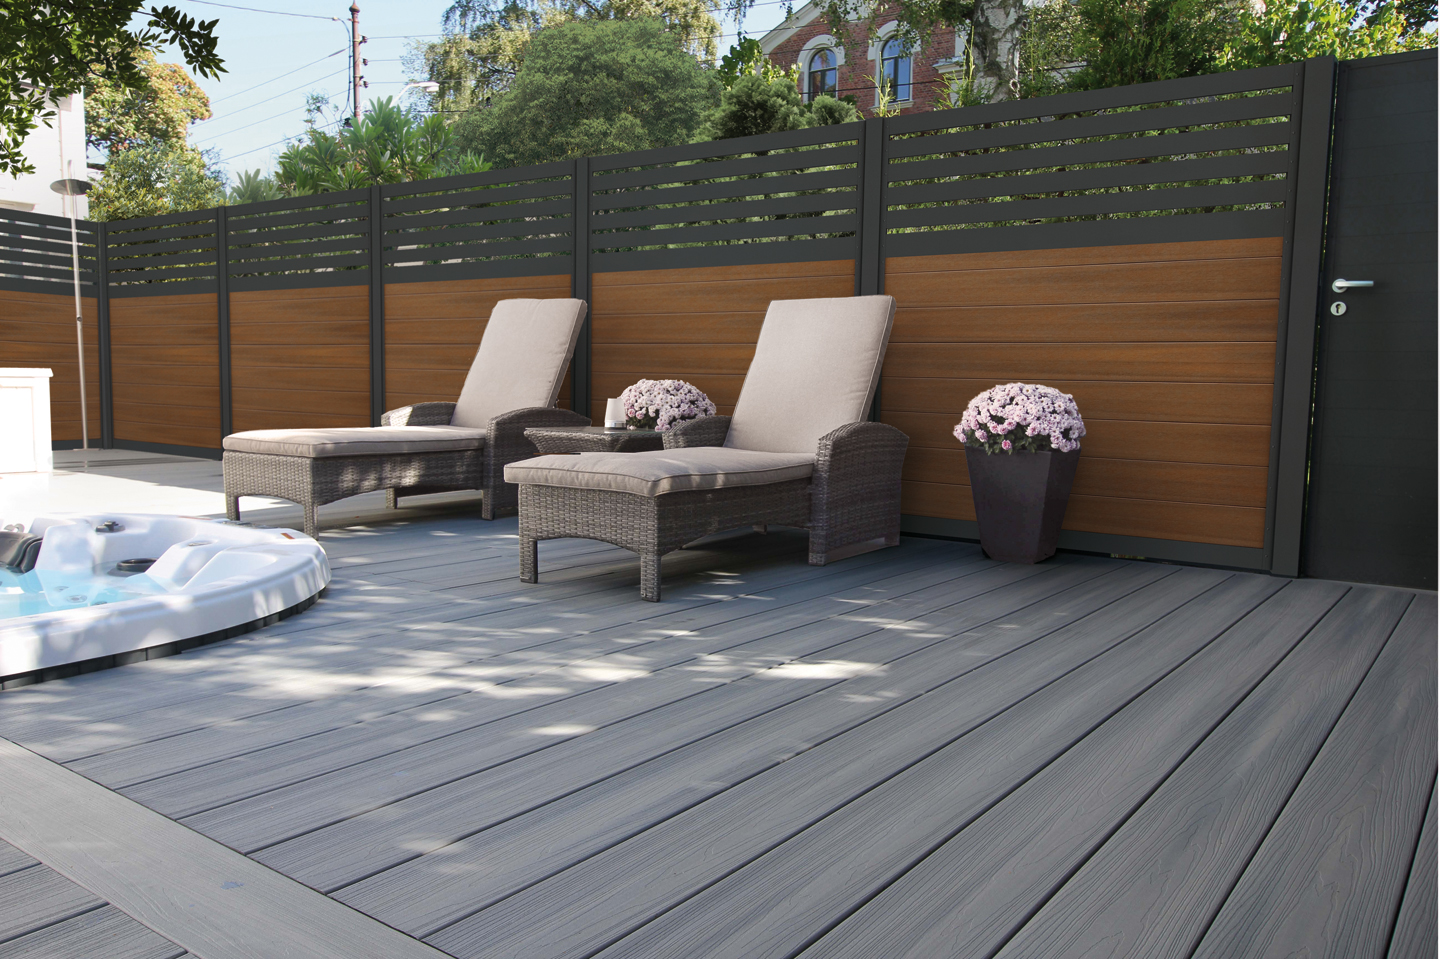 LuxFence Antraciet & TeakLook